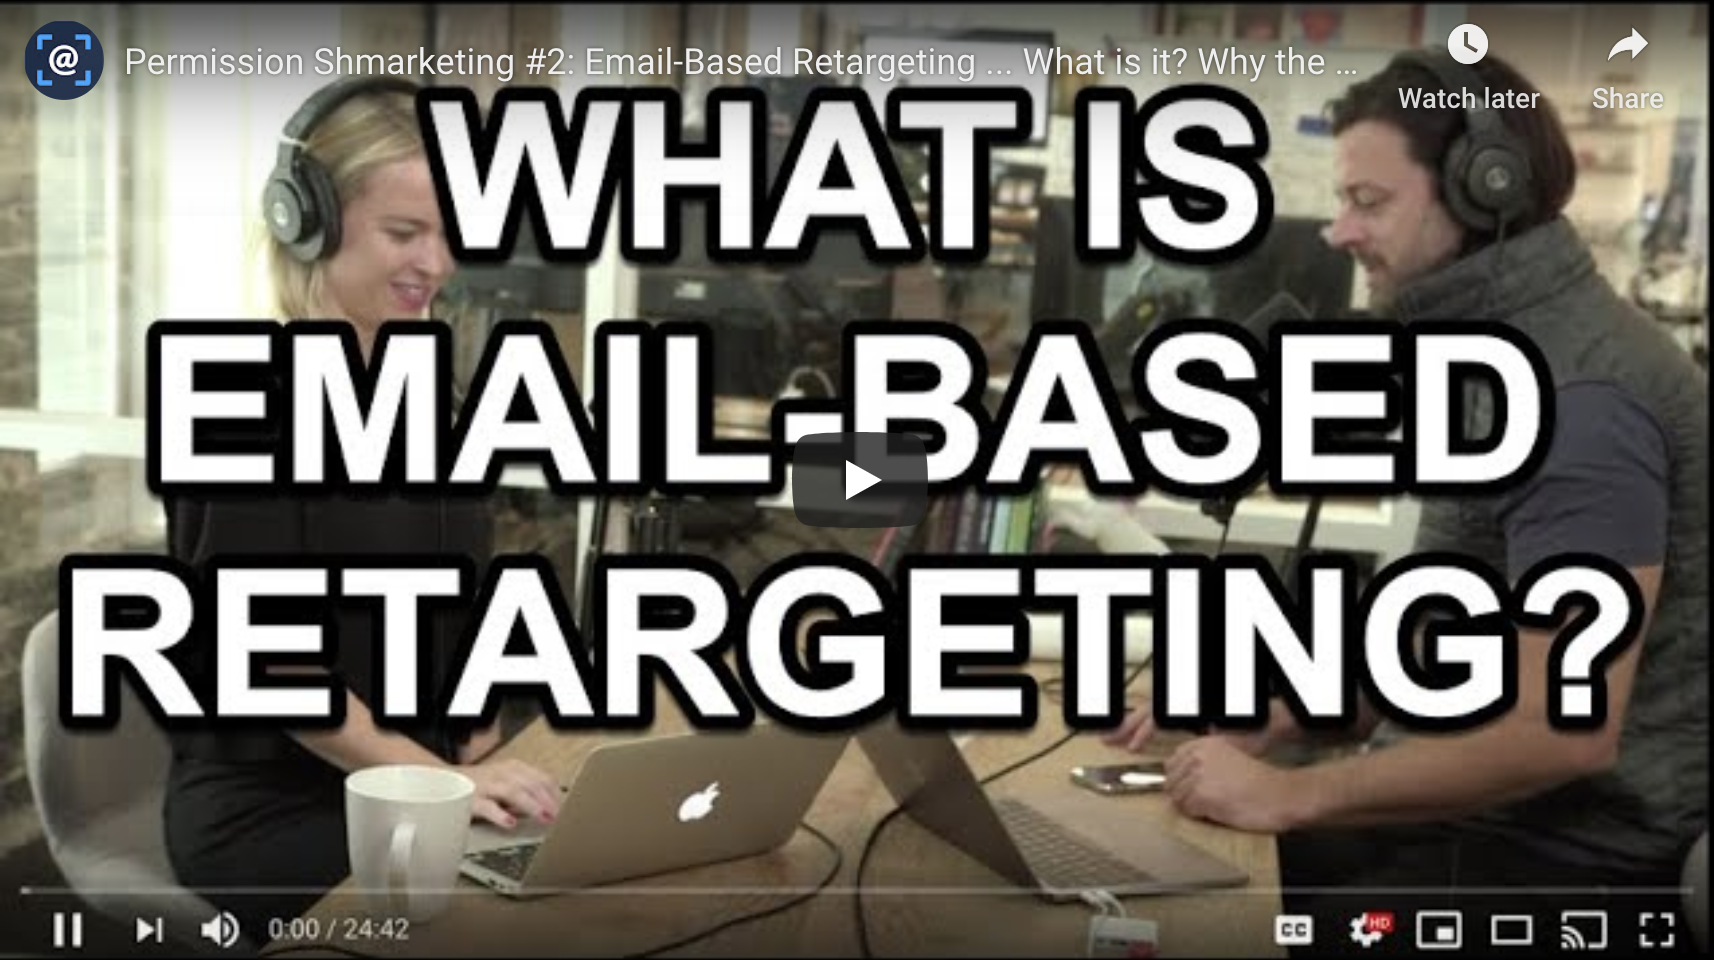 What is Email-Based Retargeting?